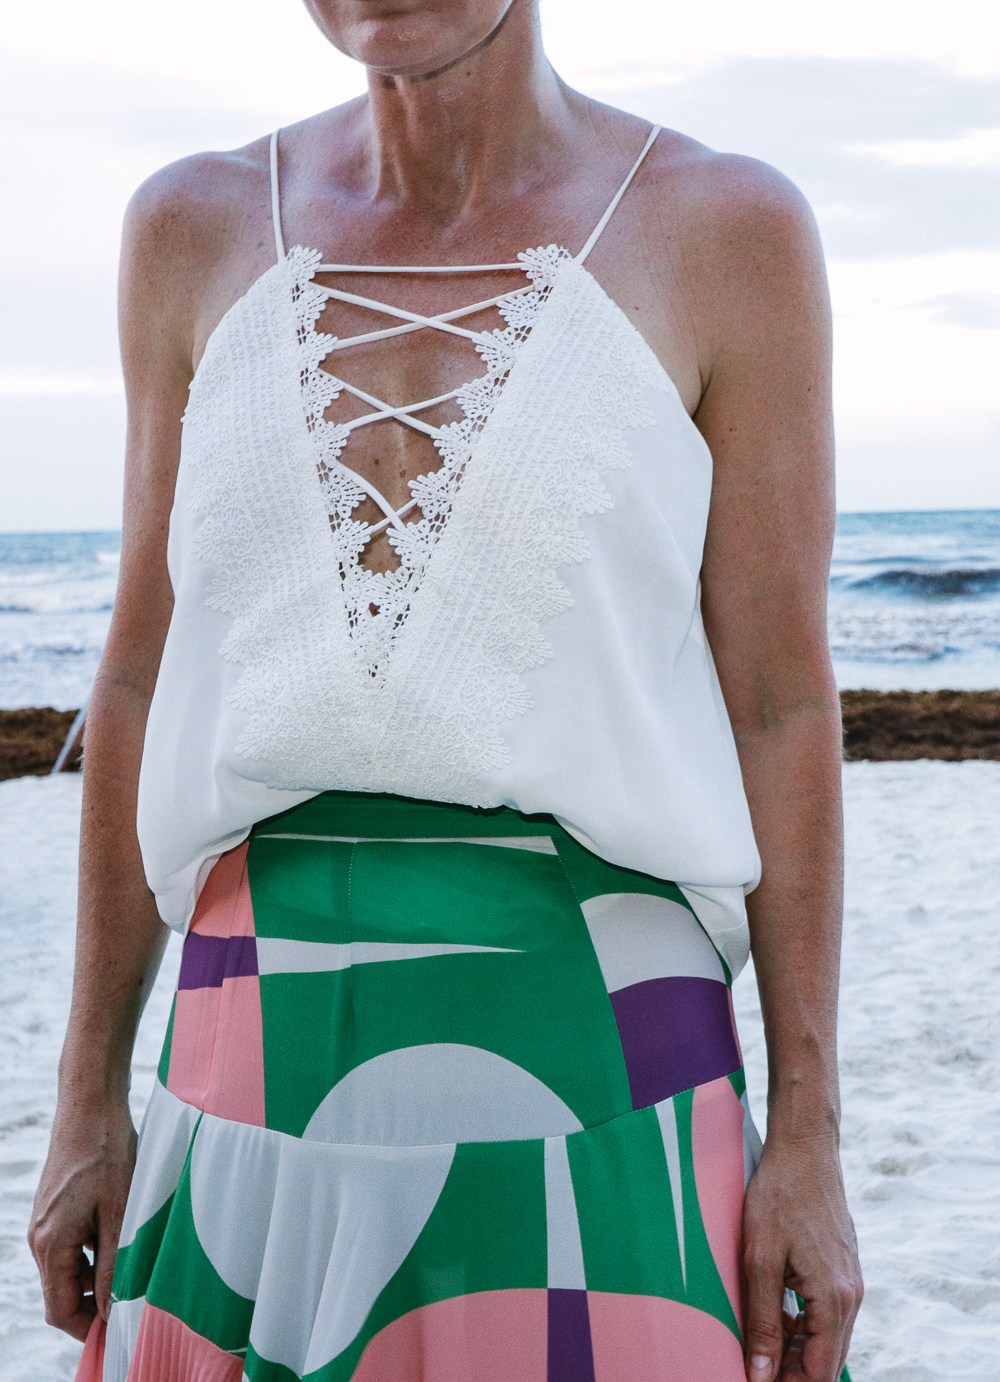 Maxi Skirts, my picks including this gorgeous pleated pink and green maxi skirt by Alexis paired with a WAYF lace up cami in white on the beach in Tulum, Mexico